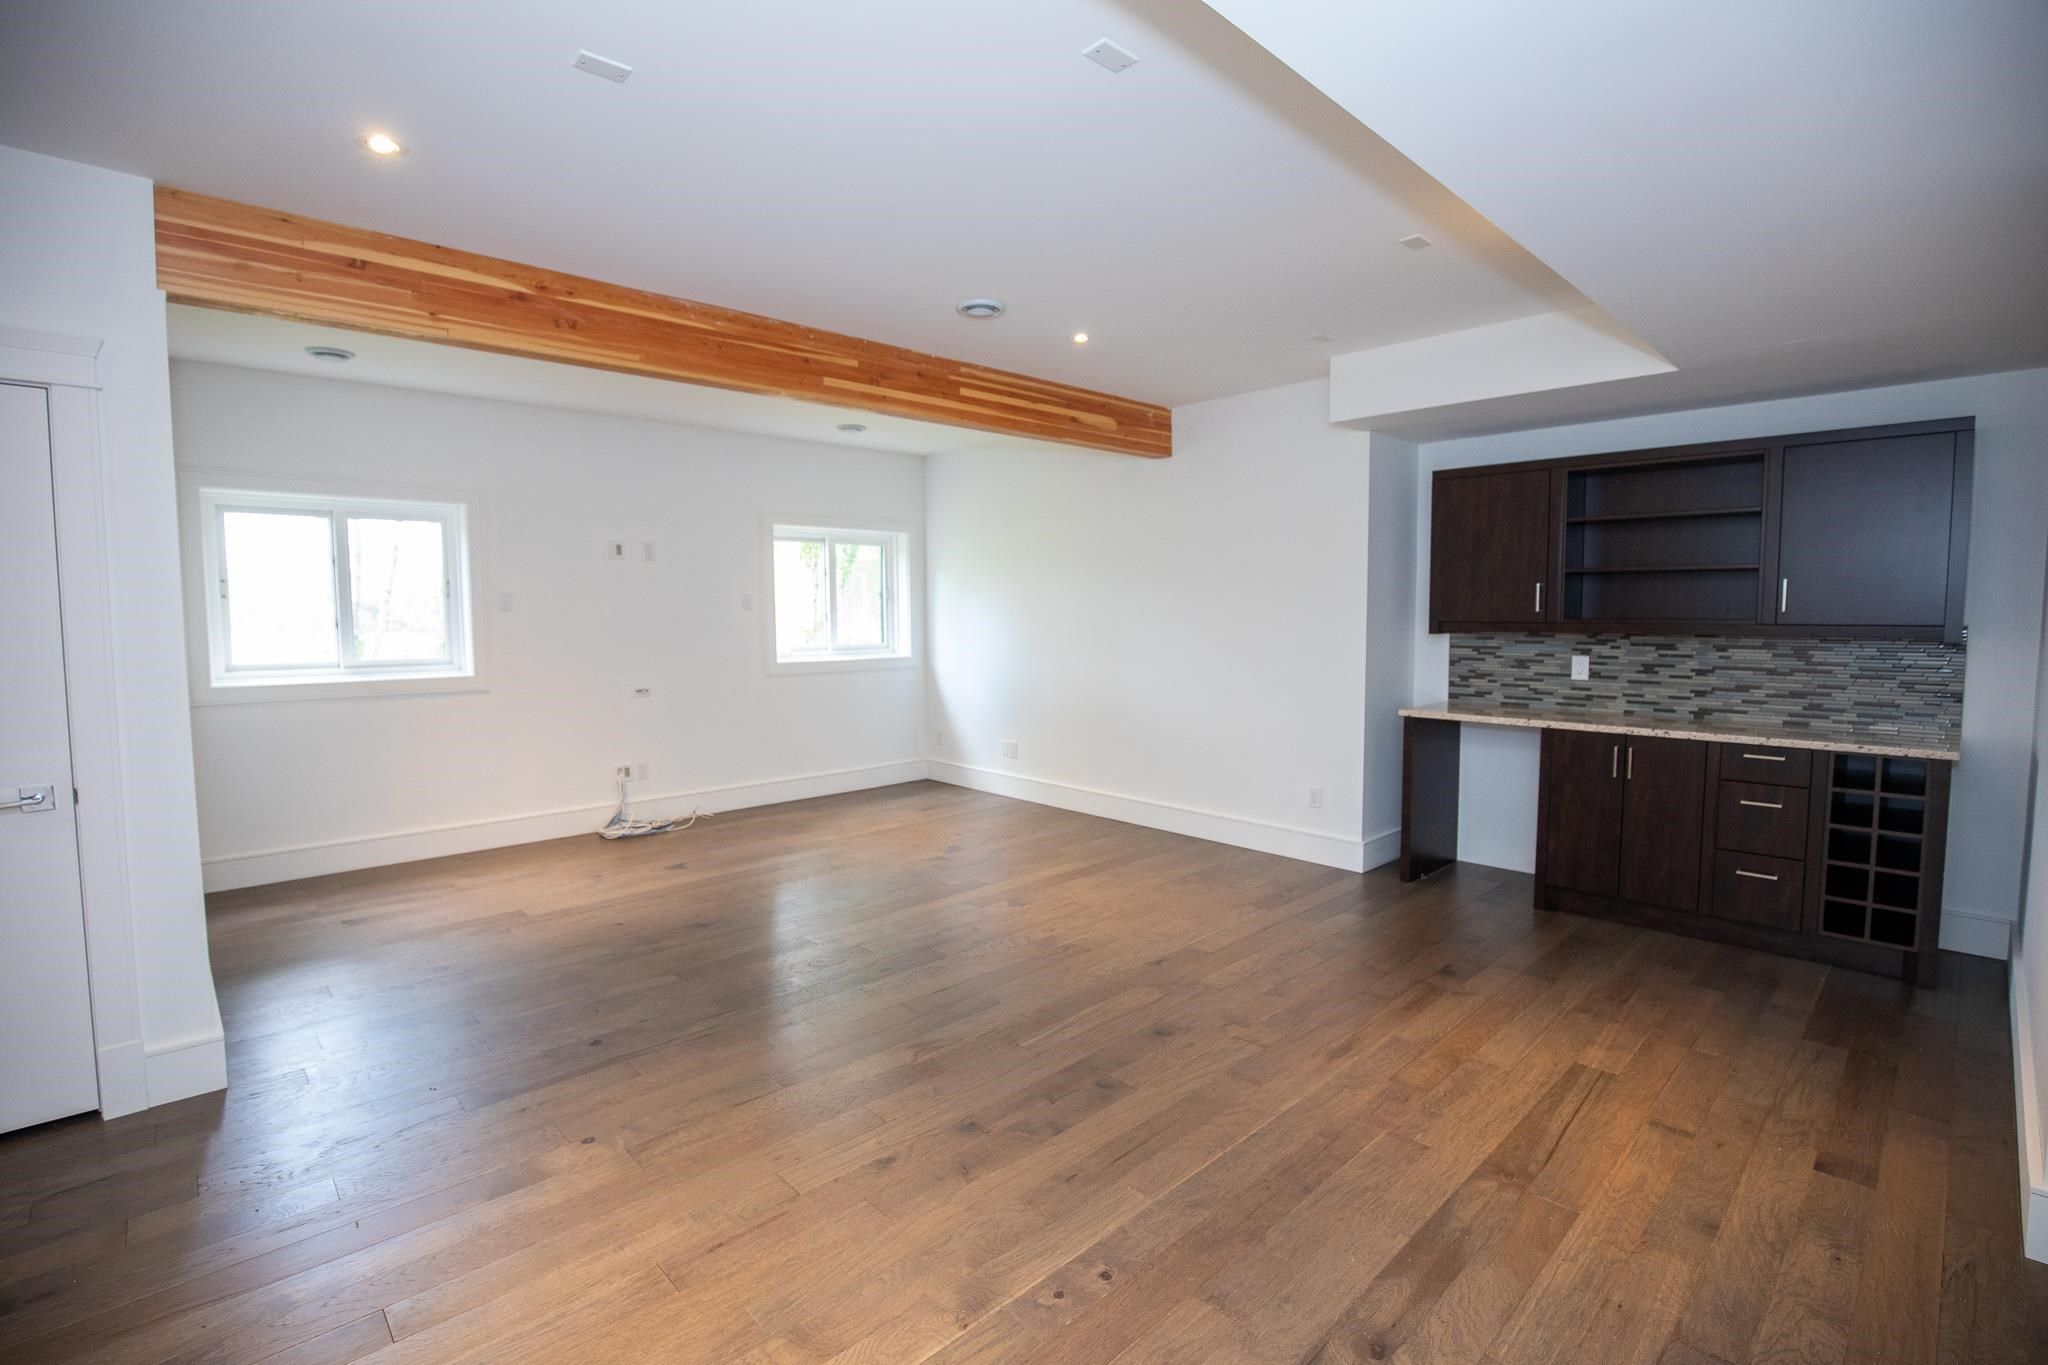 Photo 27: Photos: 7 Black Cherry Lane in Ardoise: 403-Hants County Residential for sale (Annapolis Valley)  : MLS®# 202118682